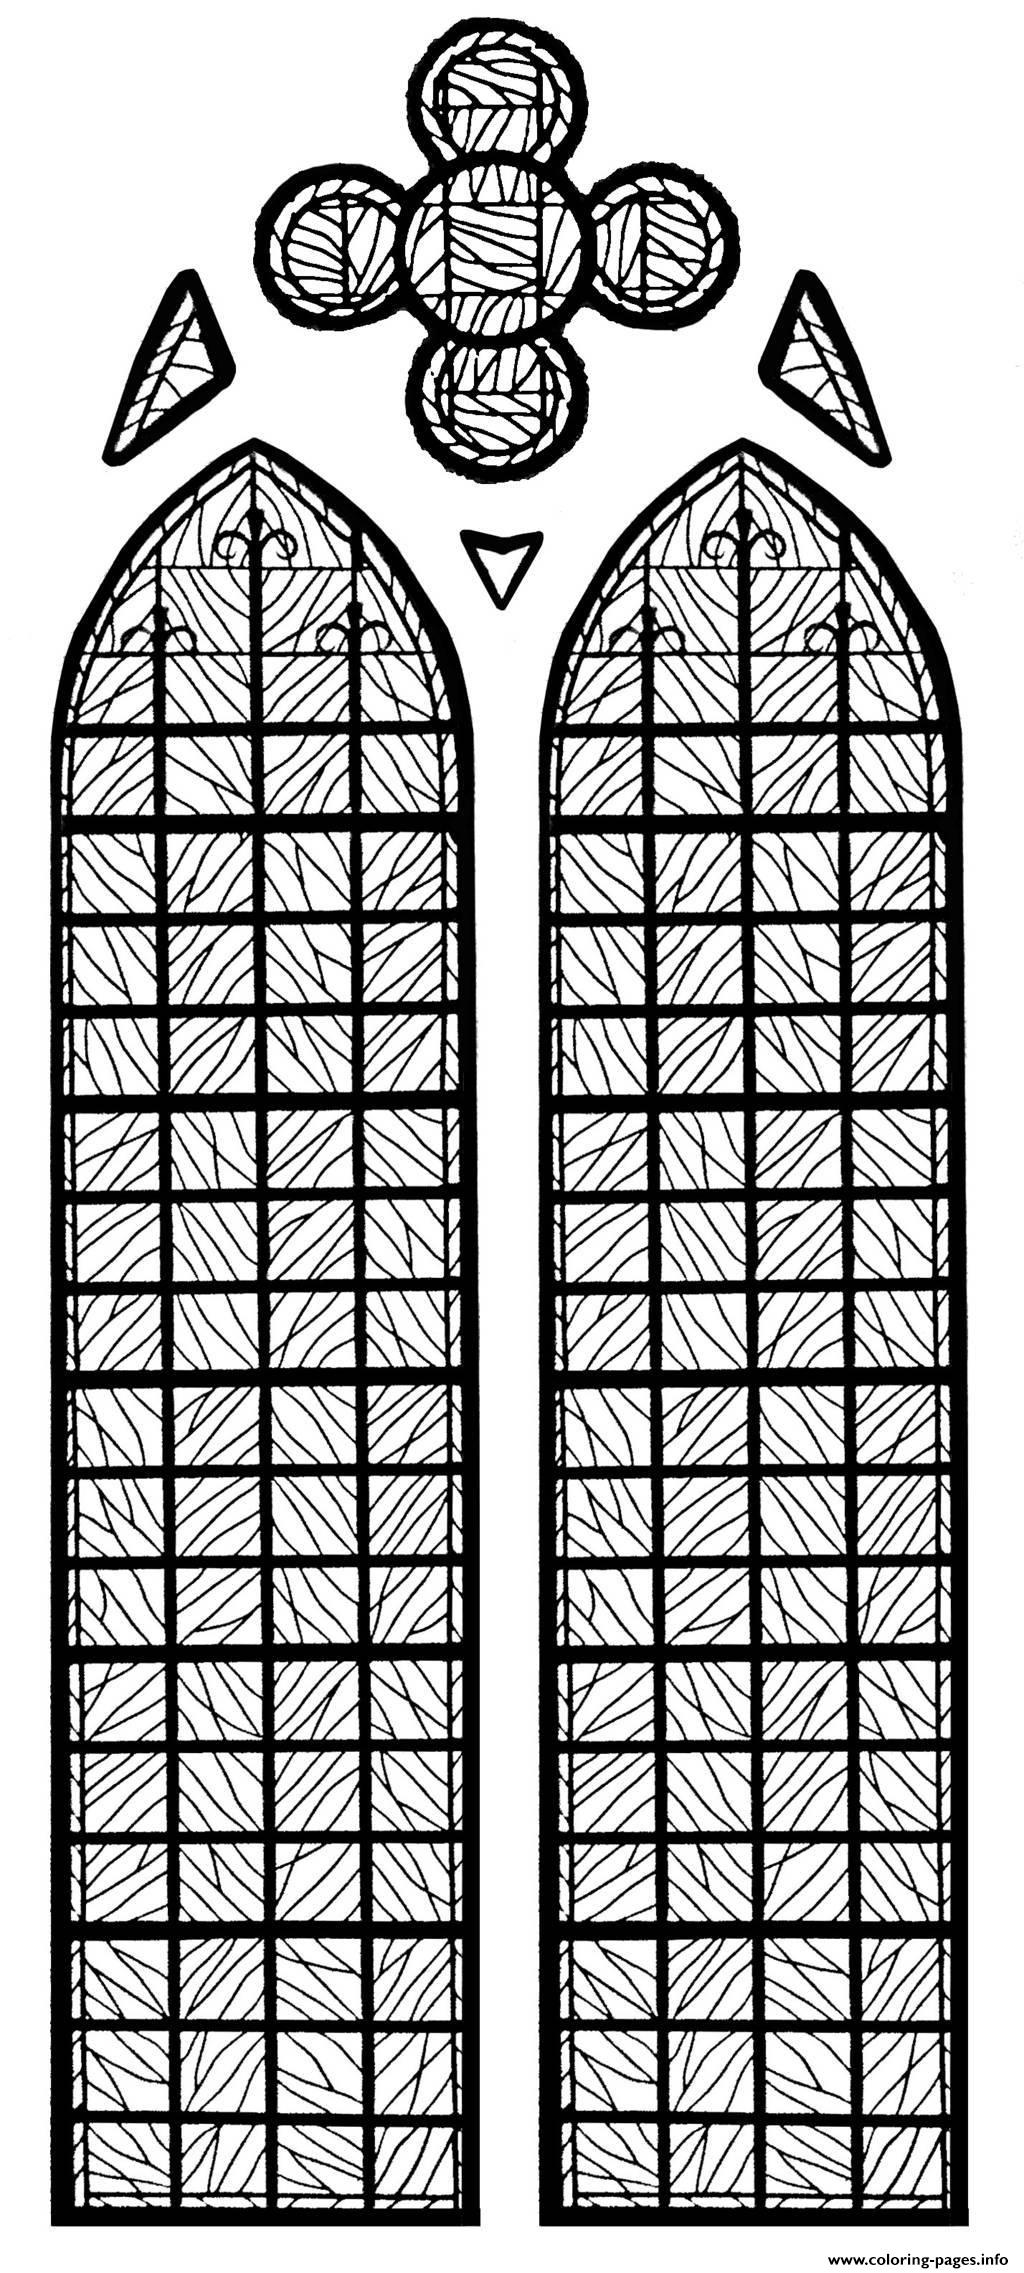 Adult Stained Glass Chapelle Chateau Yverdon Les Bains France coloring pages